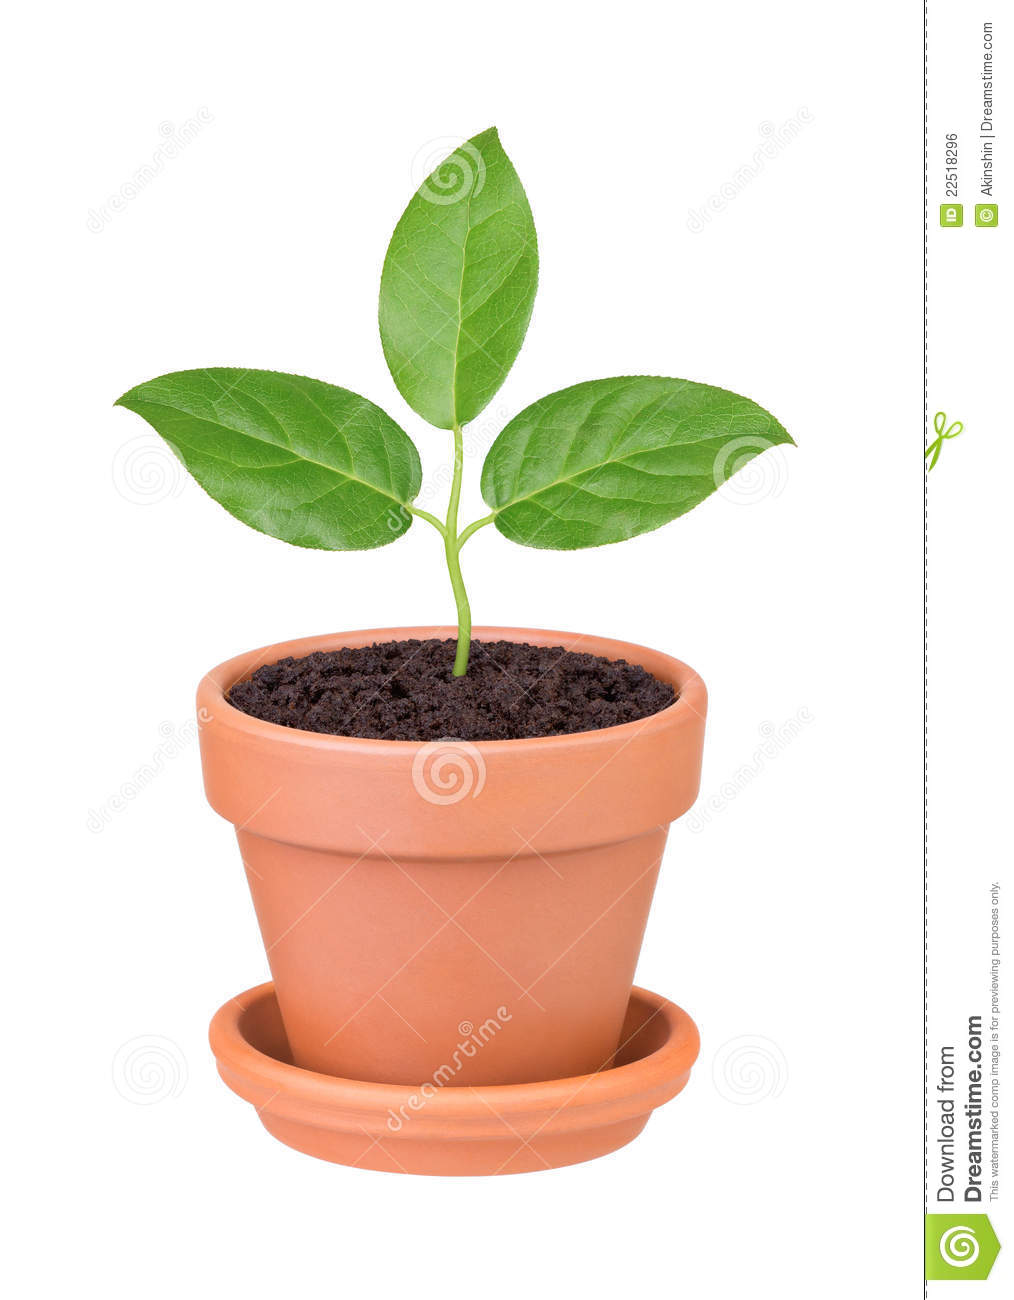 plant with green leaves growing in a pot royalty free stock image image 22518296